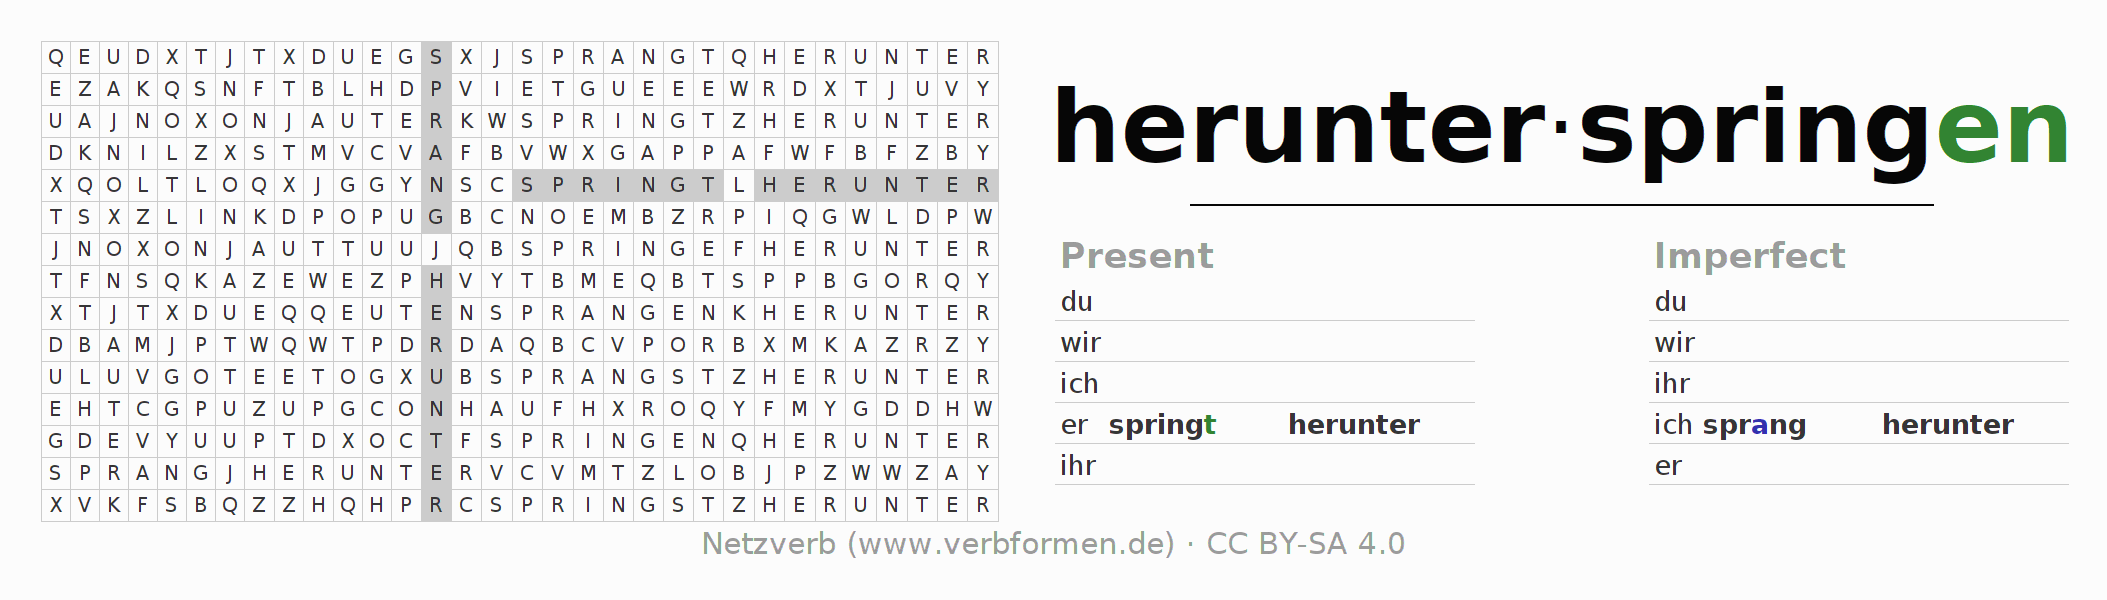 Word search puzzle for the conjugation of the verb herunterspringen